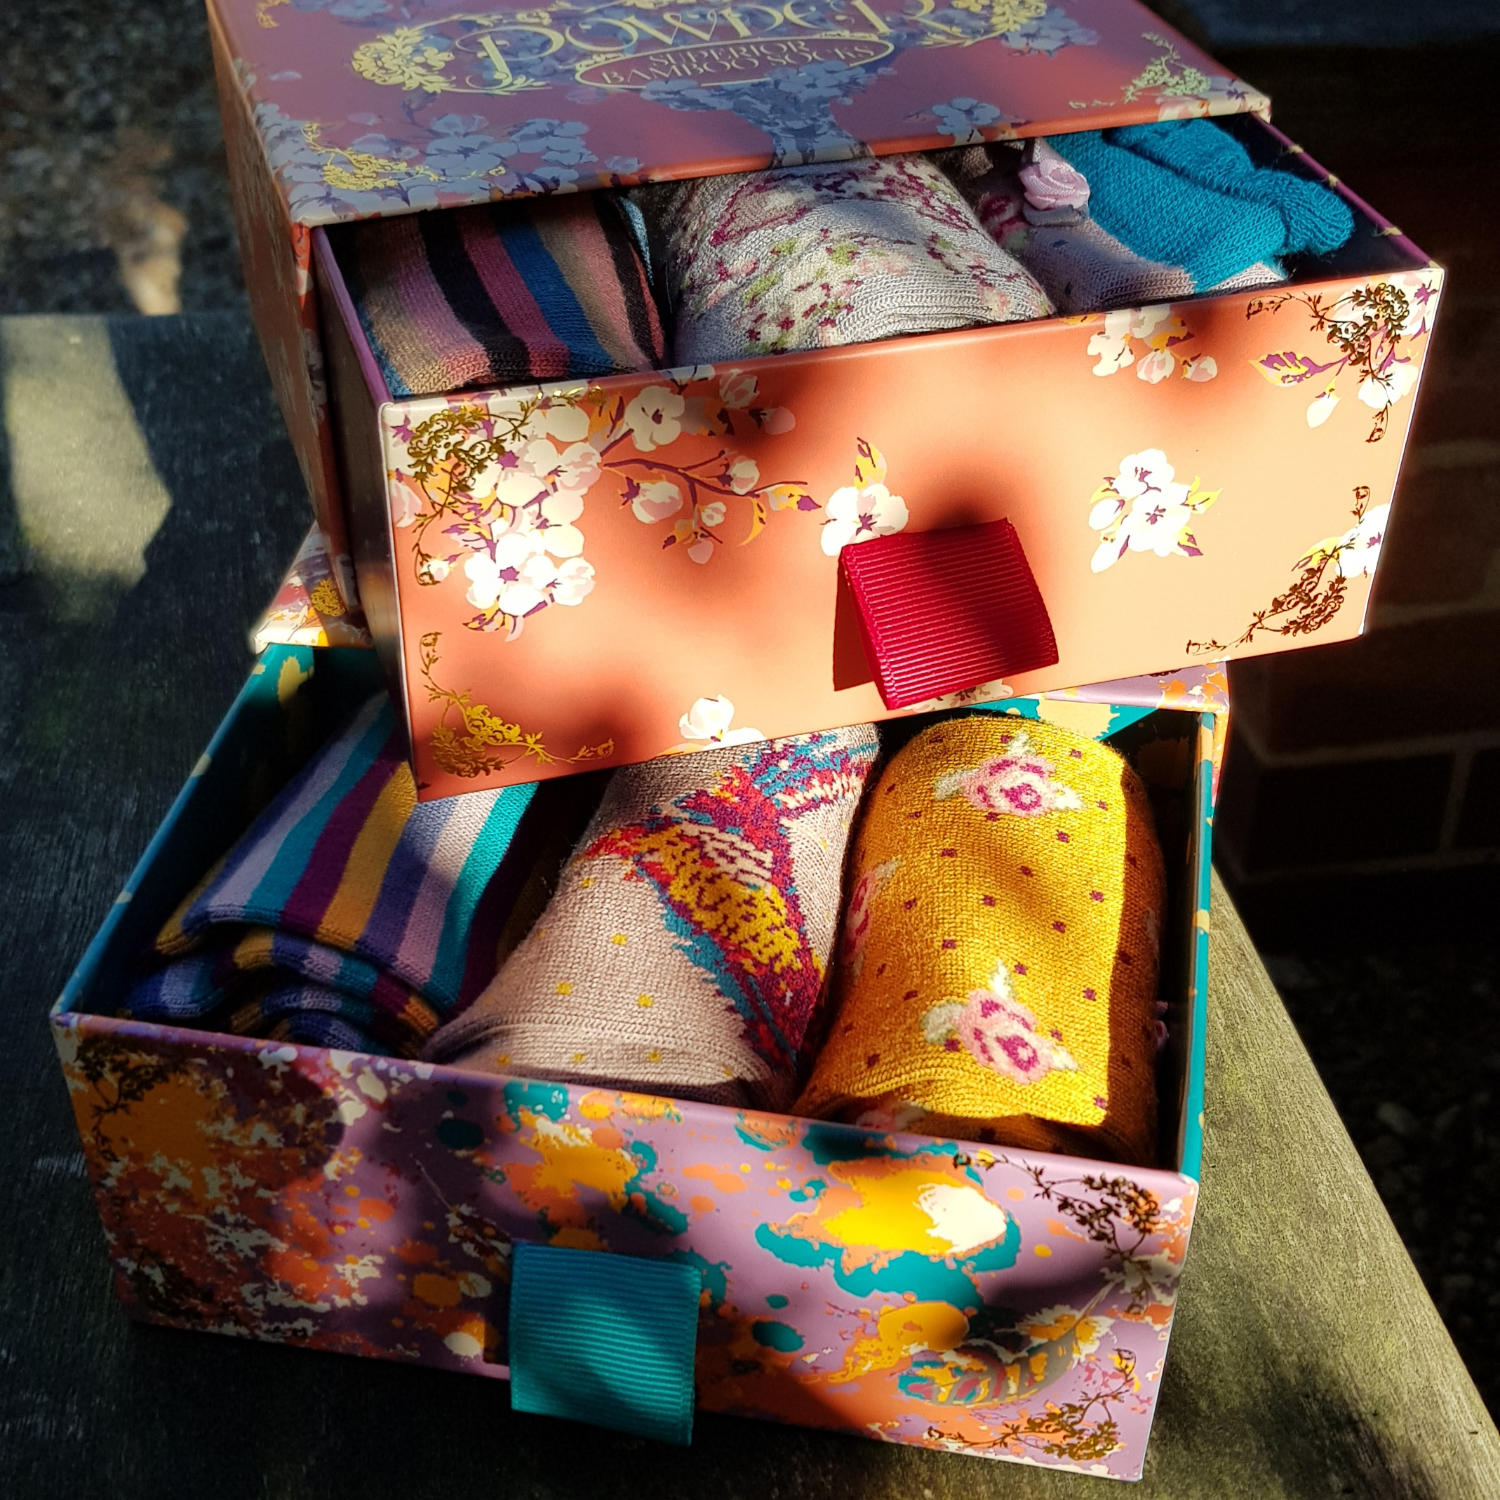 pretty_patterned_socks_in_boxes_by_powder.jpg